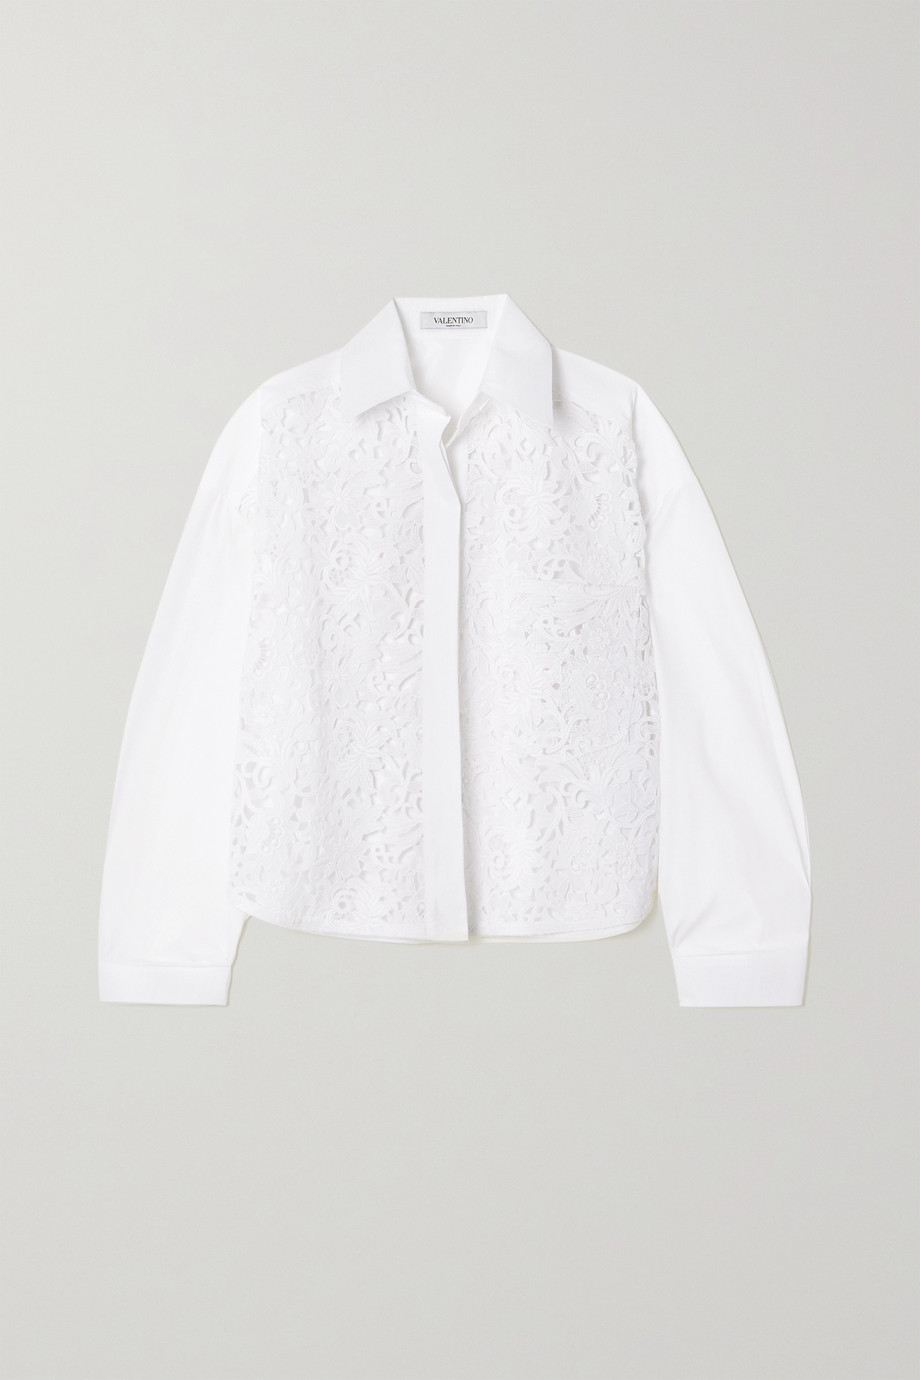 Valentino Cotton-blend poplin and guipure lace shirt